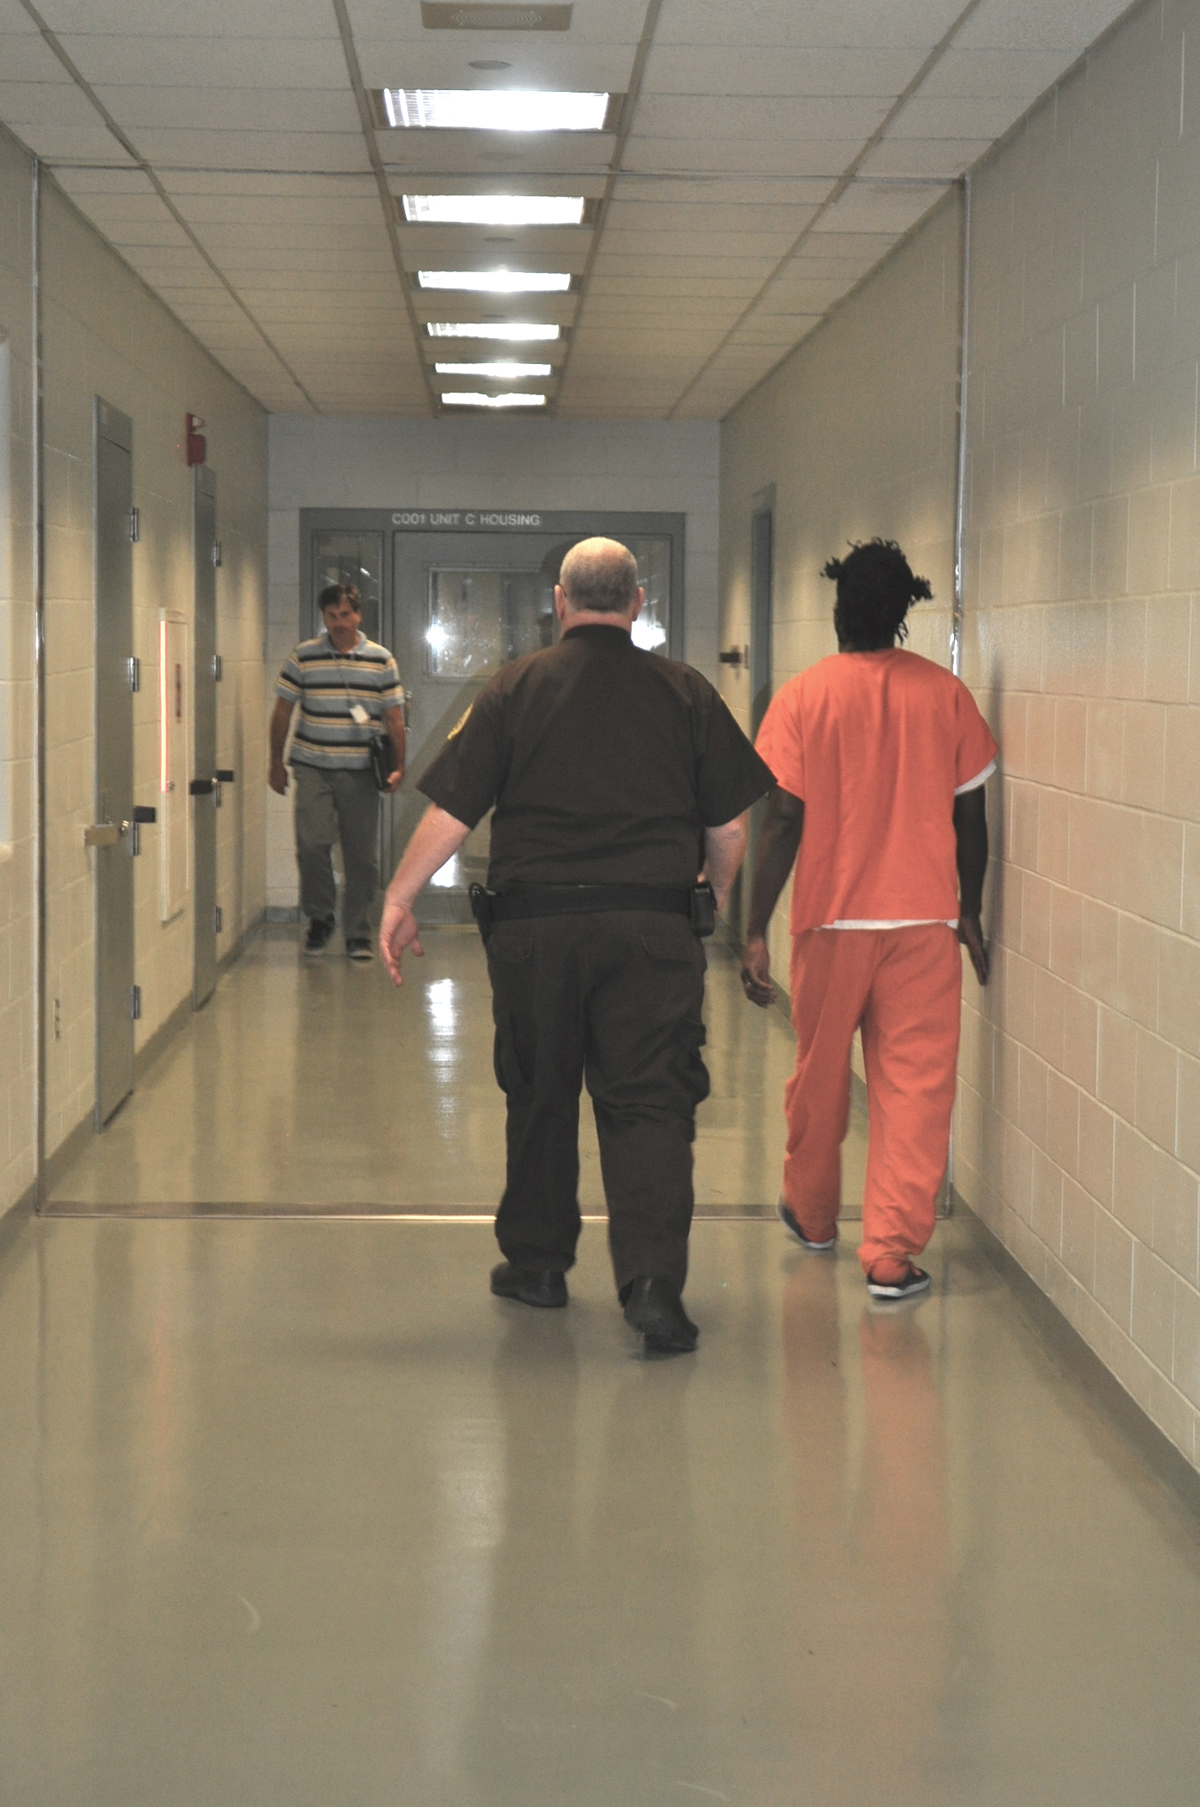 Officer and Inmates in Jail Hallway